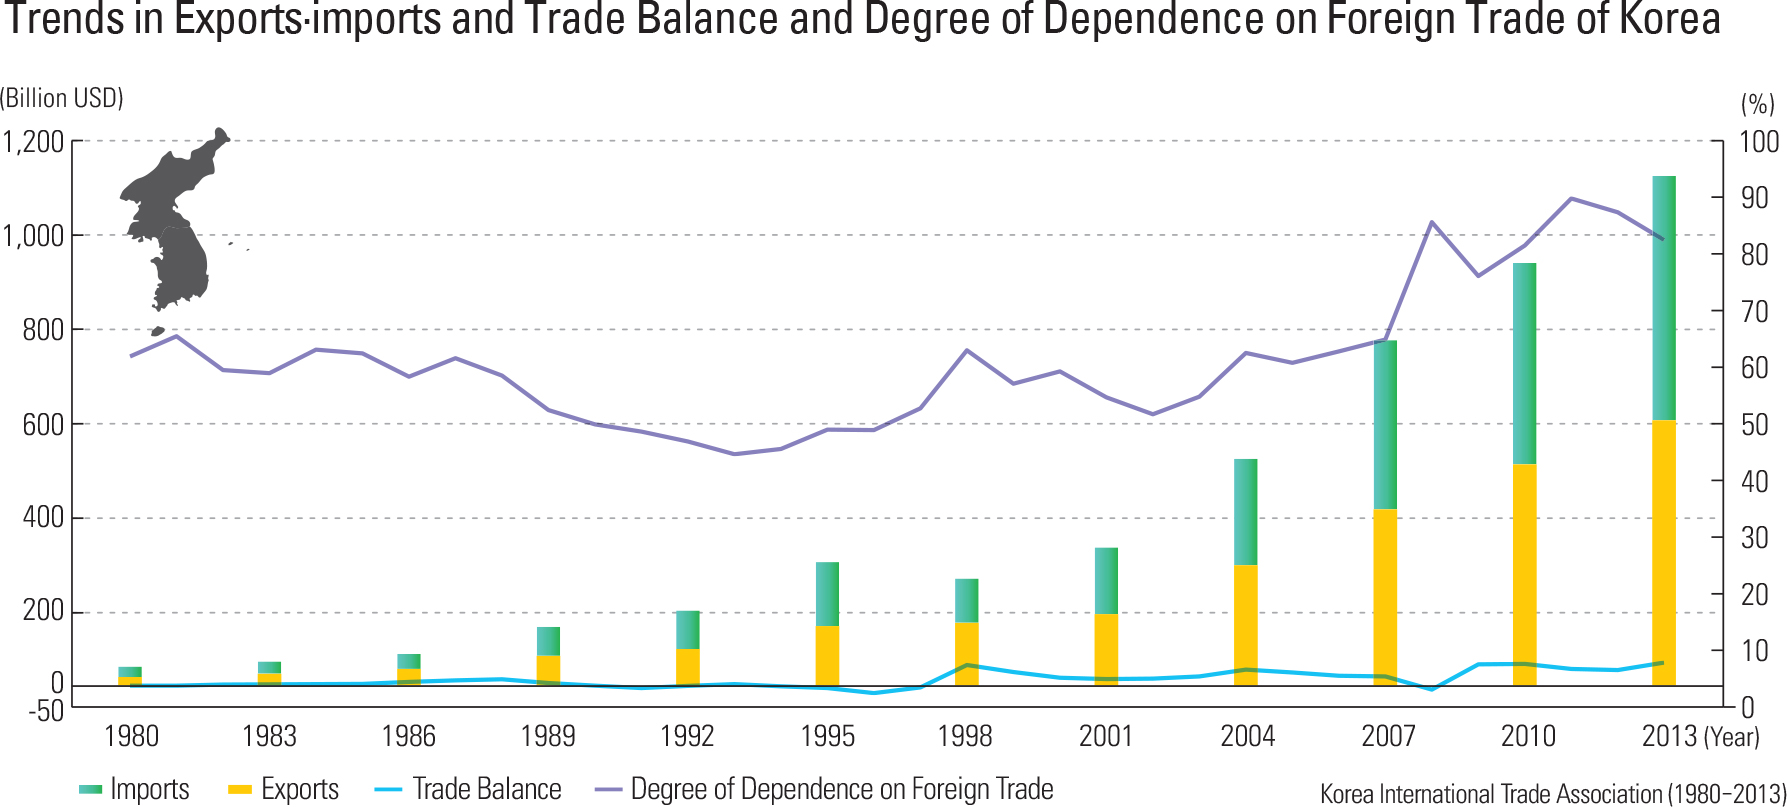 Trends in Exports·imports and Trade Balance and Degree of Dependence on Foreign Trade of Korea